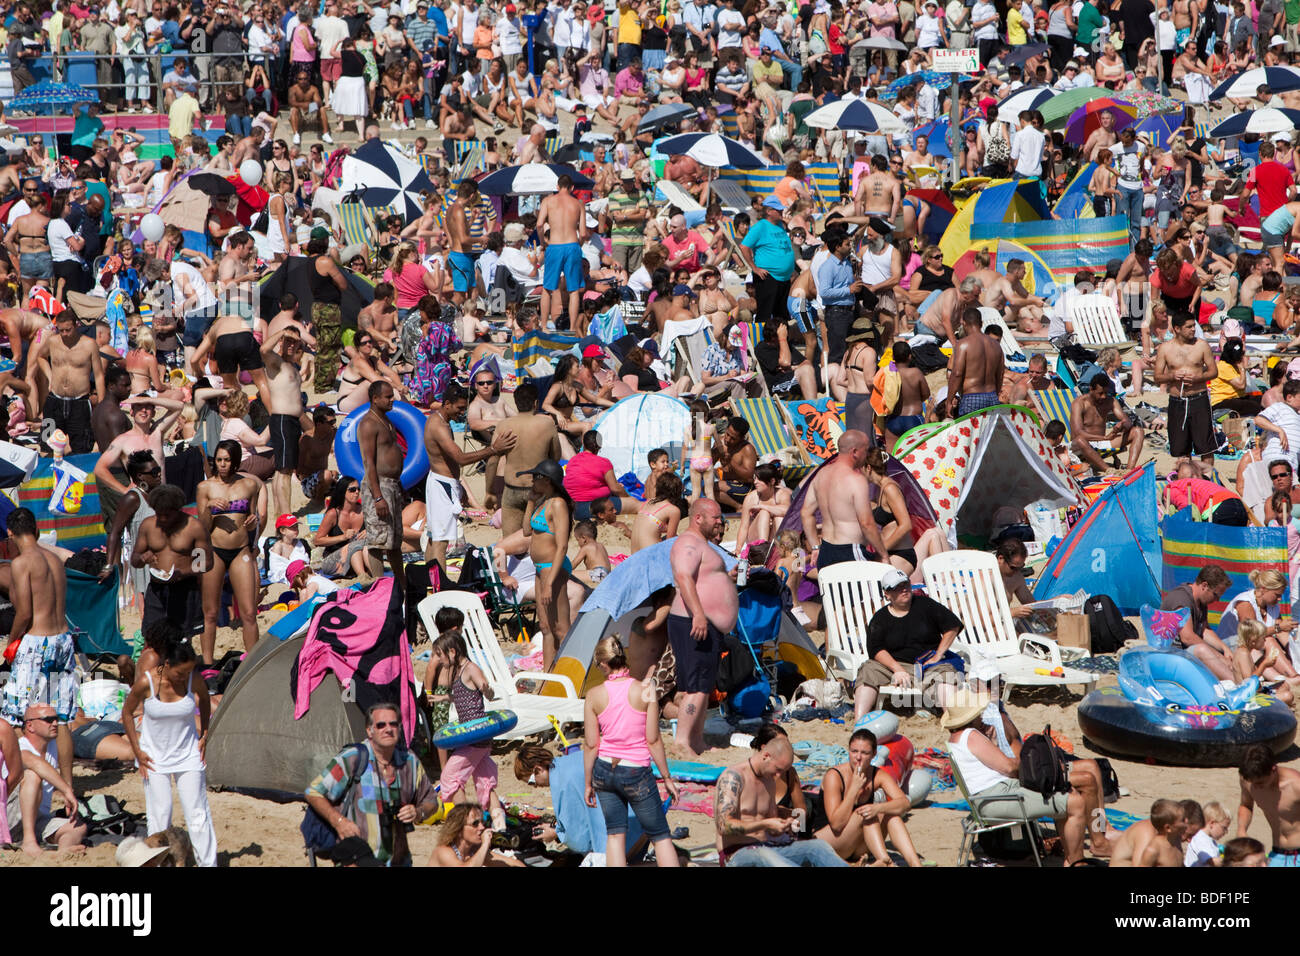 British Summer - crowded beach on a hot August weekend at Bournemouth - Stock Image